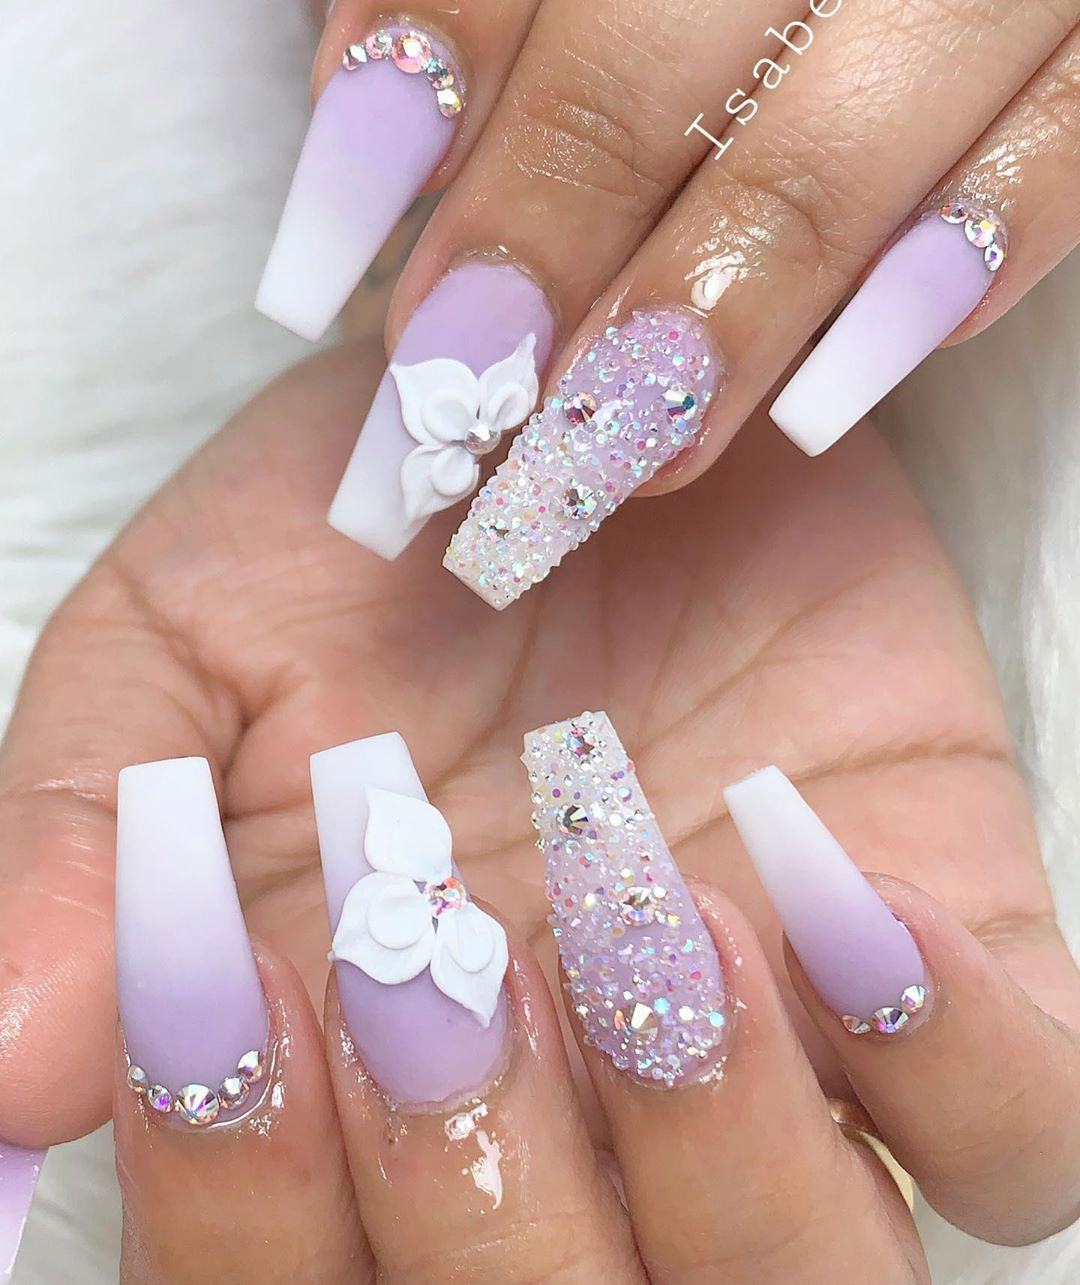 Best Summer Ombre Nails In 2019 Pink Ombre Nails Nails Design With Rhinestones Ombre Acrylic Nails